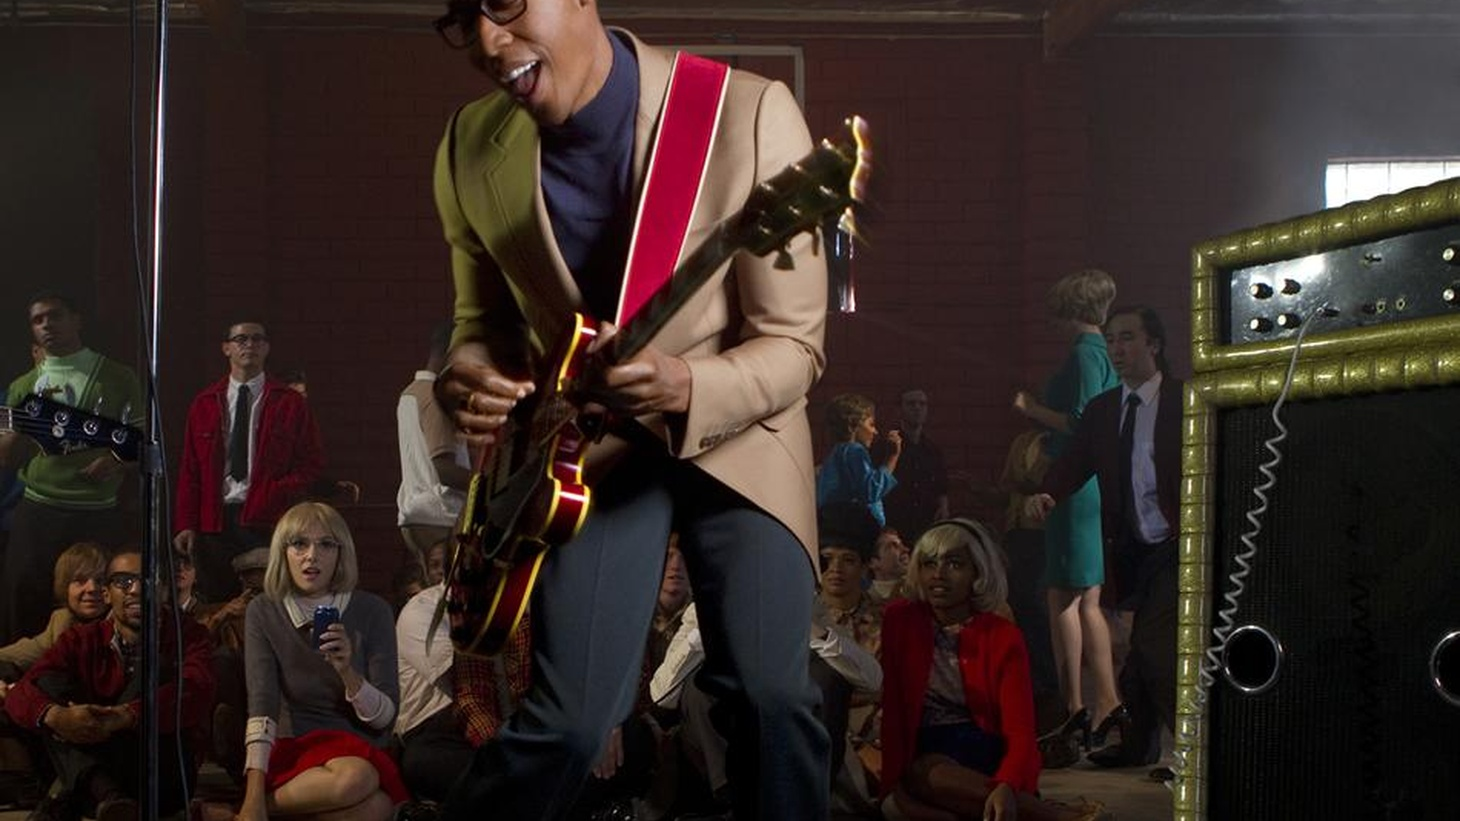 Soul stirring sounds will be heard from Raphael Saadiq and his band as they perform songs from one of KCRW's favorite albums in 2011, Stone Rollin. Join Morning Becomes Eclectic as we broadcast from Austin's finest music festival, South by Southwest, at 11:15am.